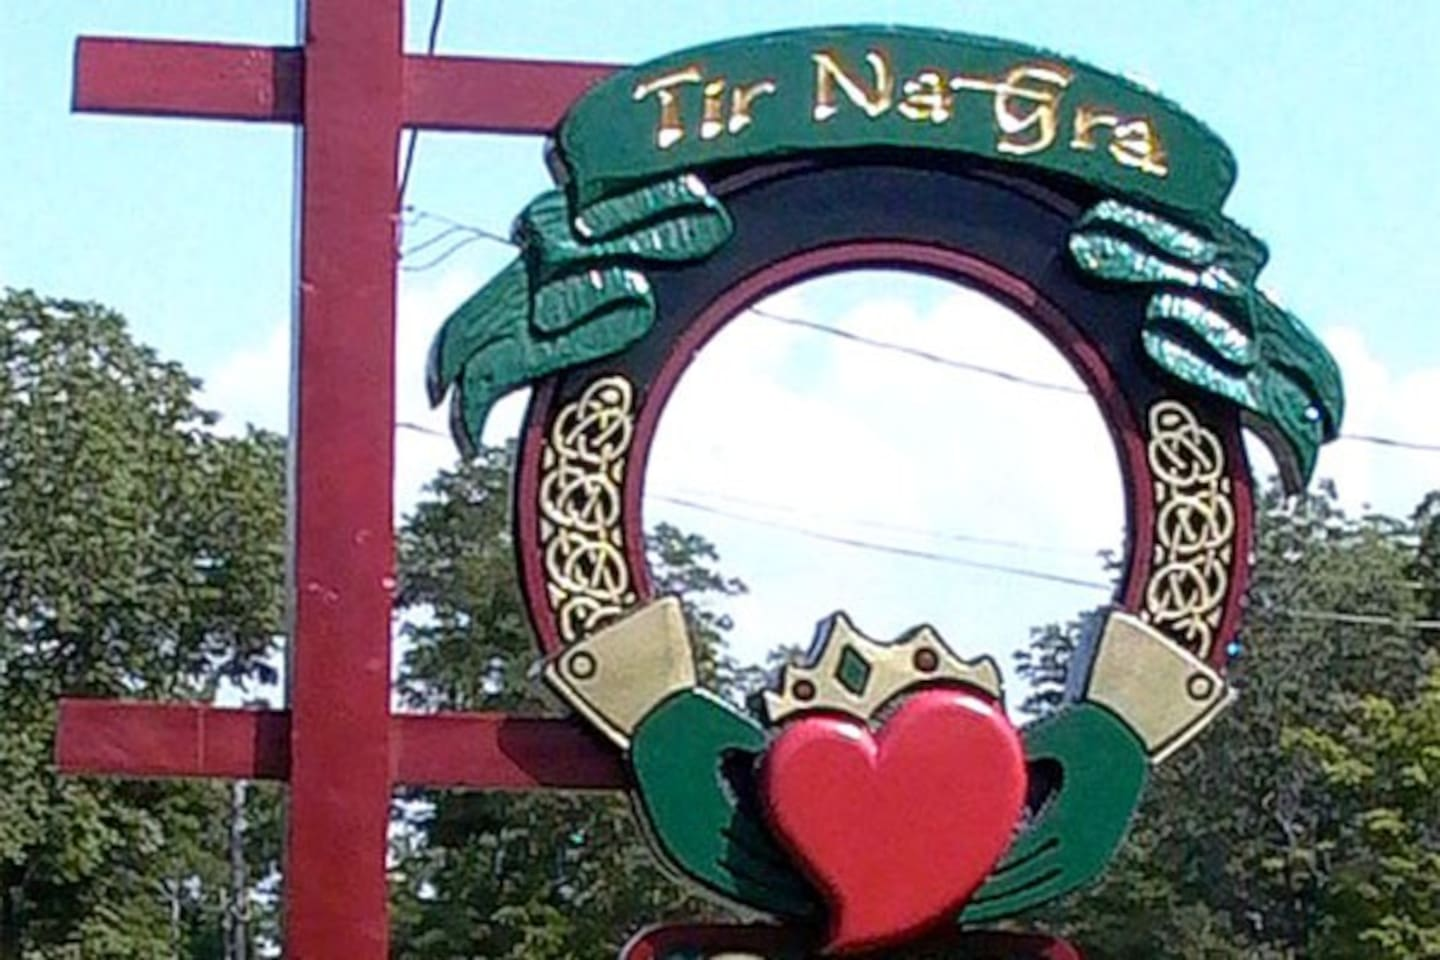 'Tir Na Gra' may be translated from the Irish language as Land of Love.